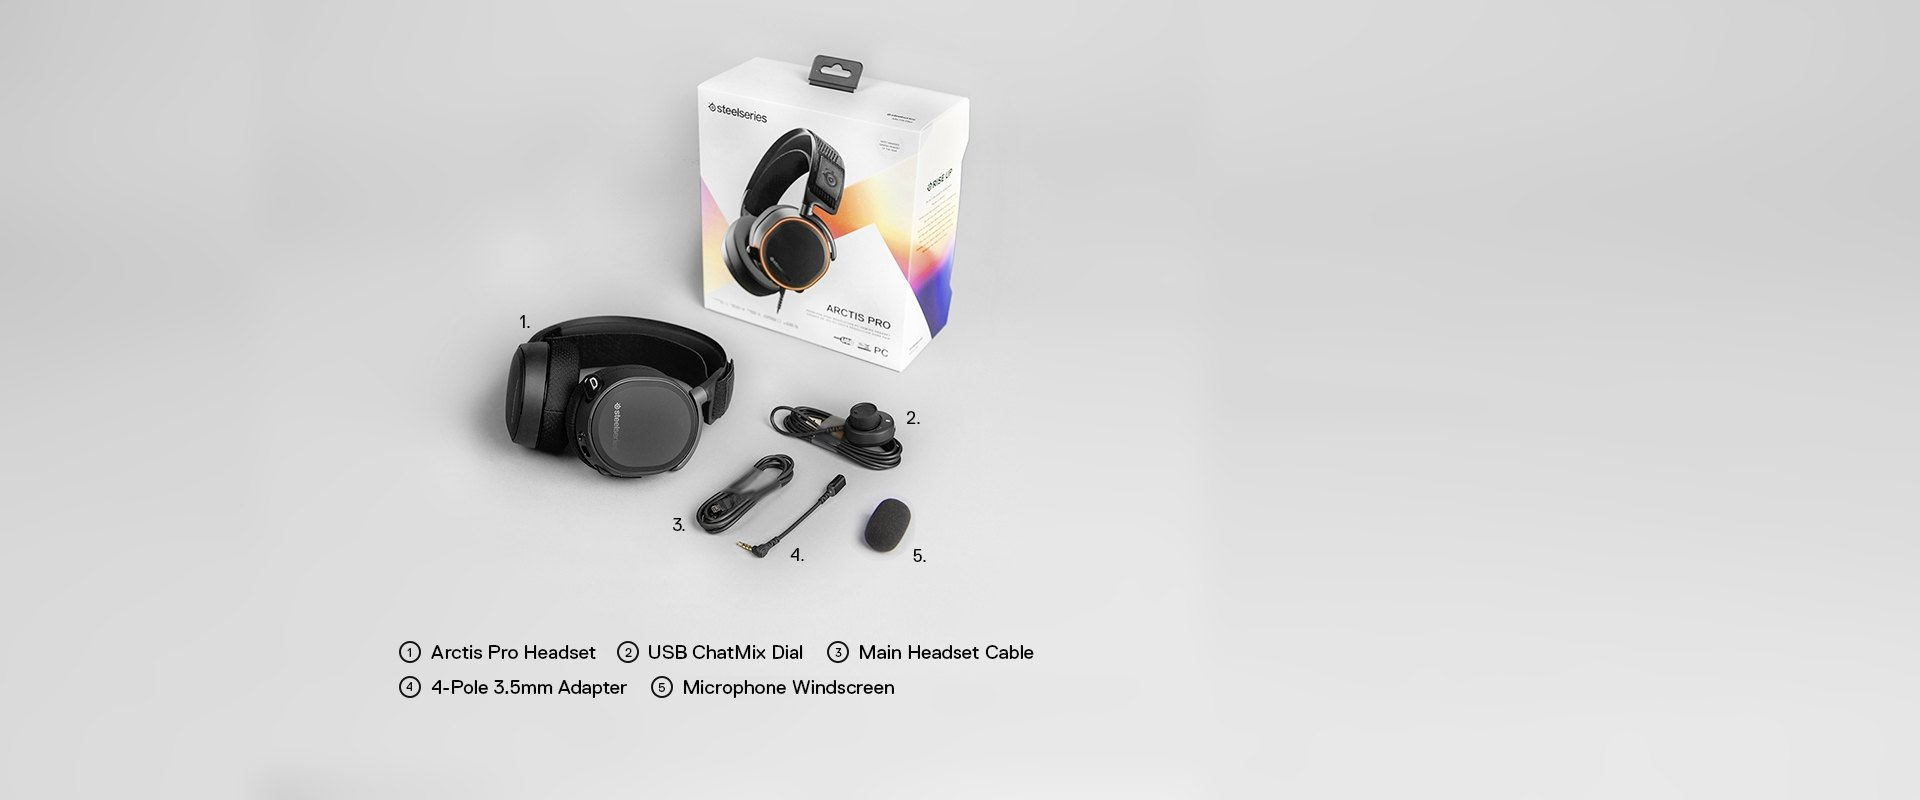 Arctis Pro headset exterior packaging shown with box contents displayed. 1. Arctis Pro Headset 2. USB ChatMix Dial 3. Main Headset Cable 4. 4-pole 3.5mm Adapter 5. Parabrisas de micrófono